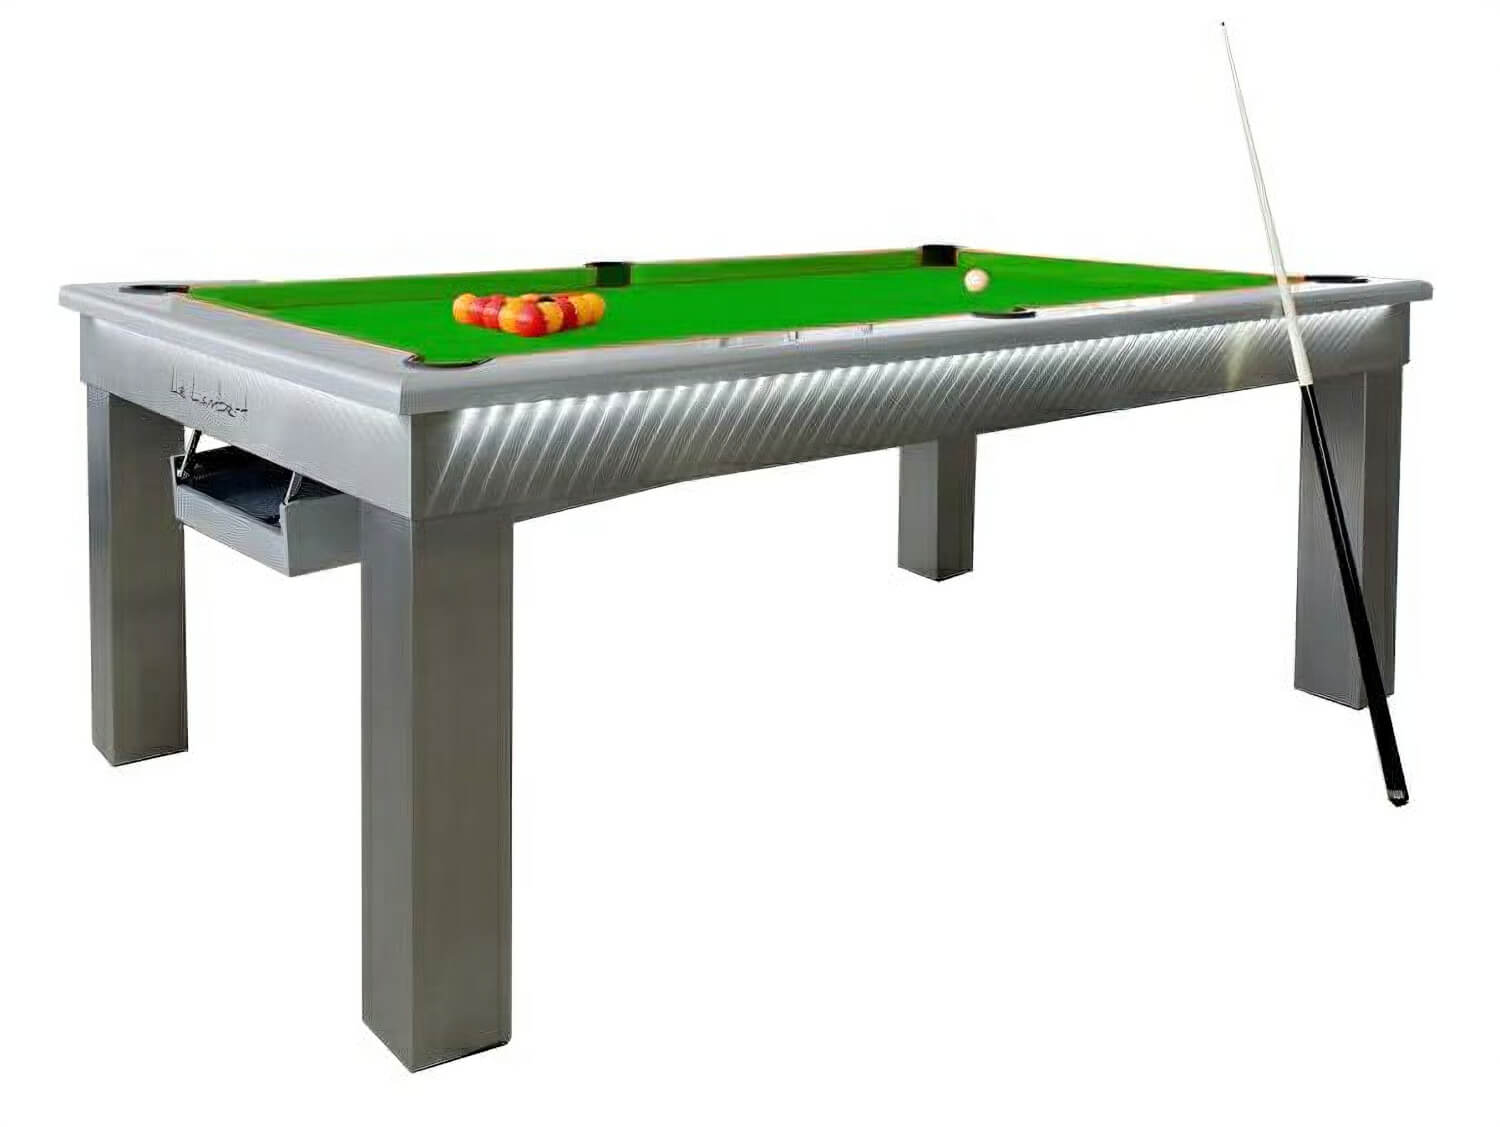 billard toulet lambert snooker table 7 ft 8 ft liberty games. Black Bedroom Furniture Sets. Home Design Ideas